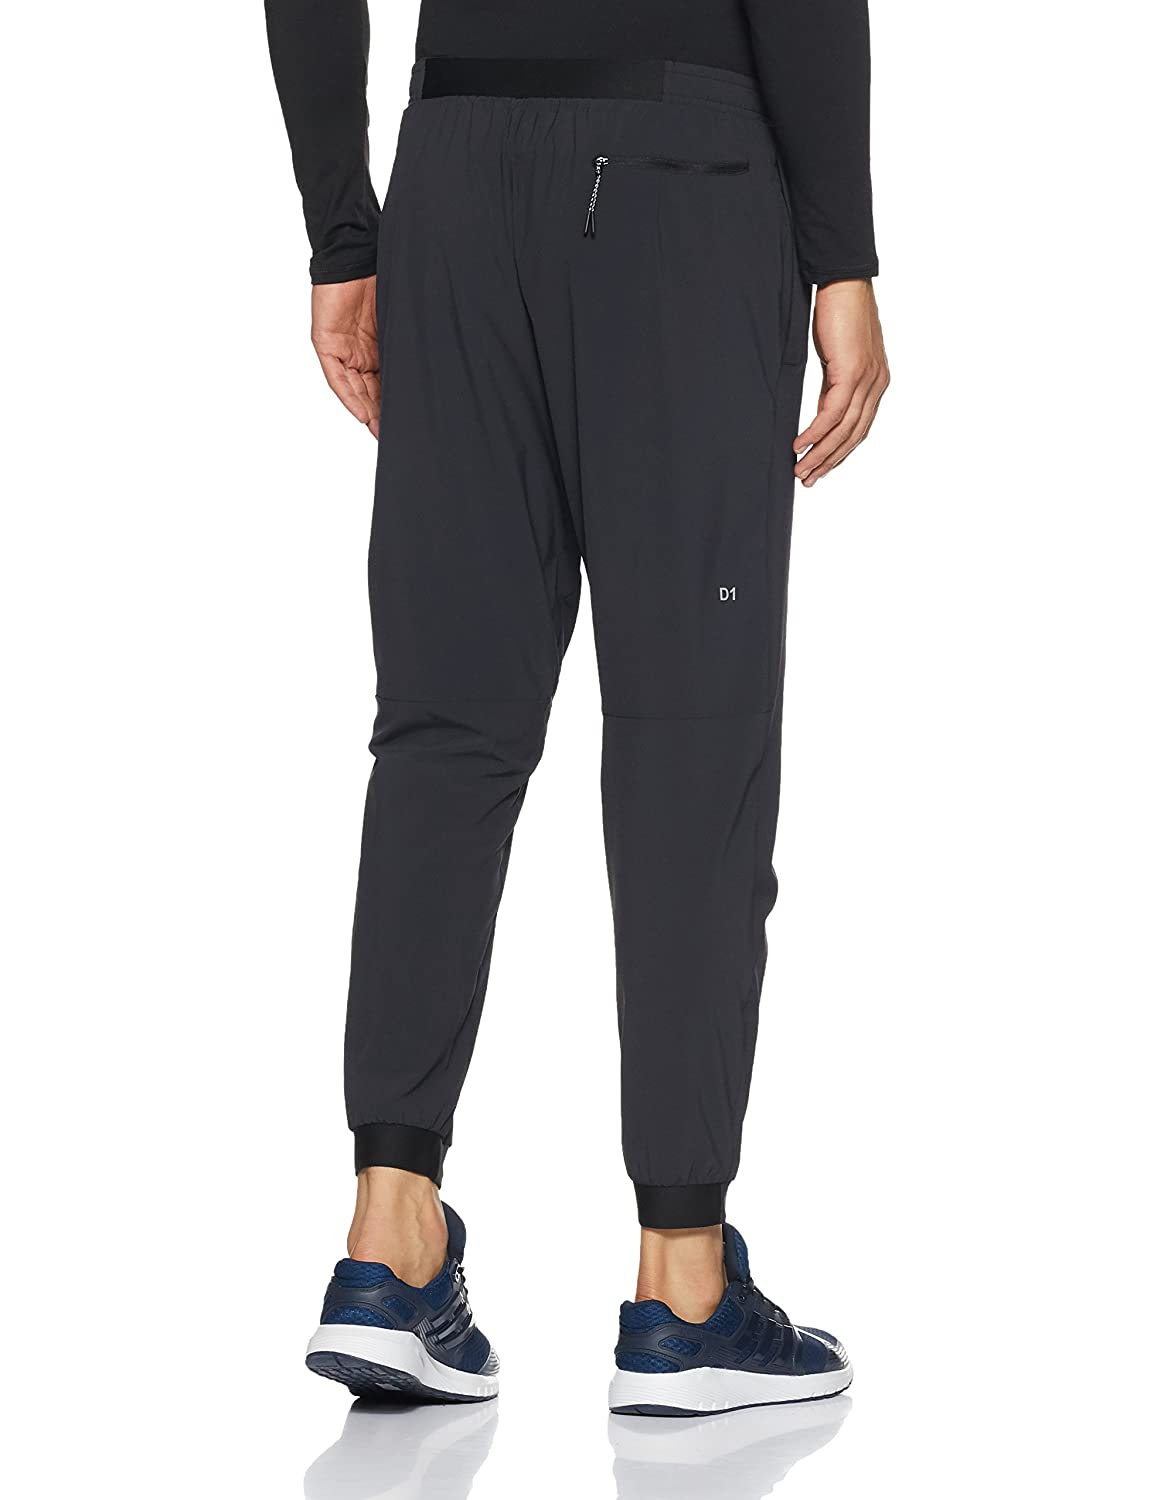 ASICS Elasticated Stretch Woven Pants Mens Sports Trousers